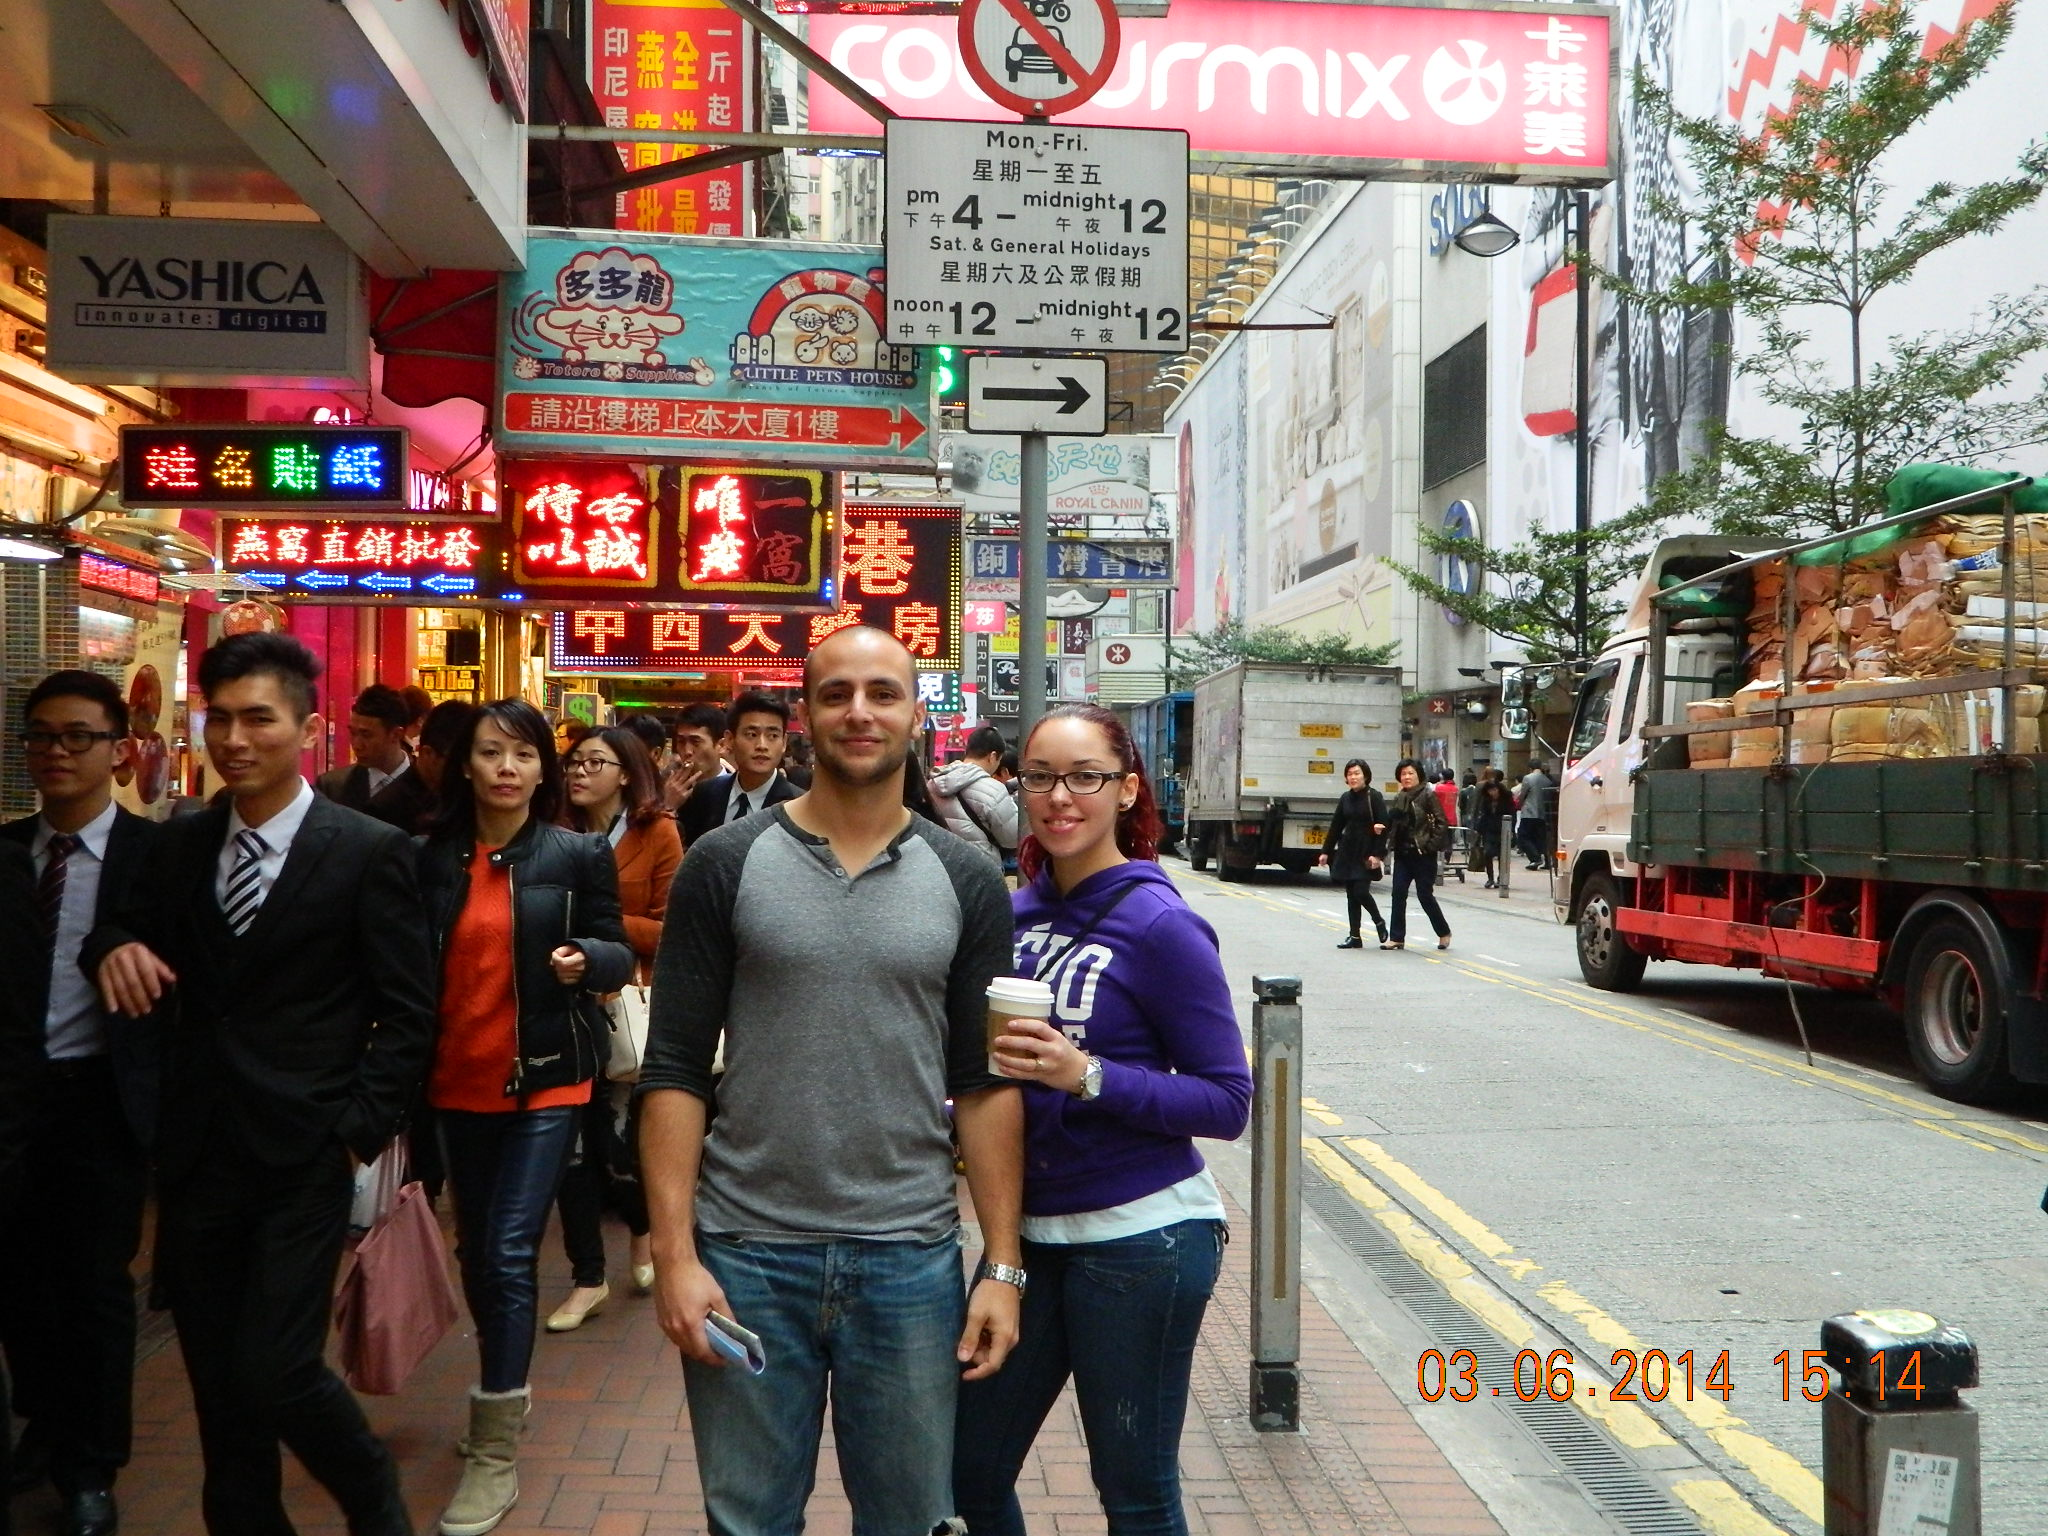 Our 1st Trip To Asia – Hong Kong & Thailand: The City of